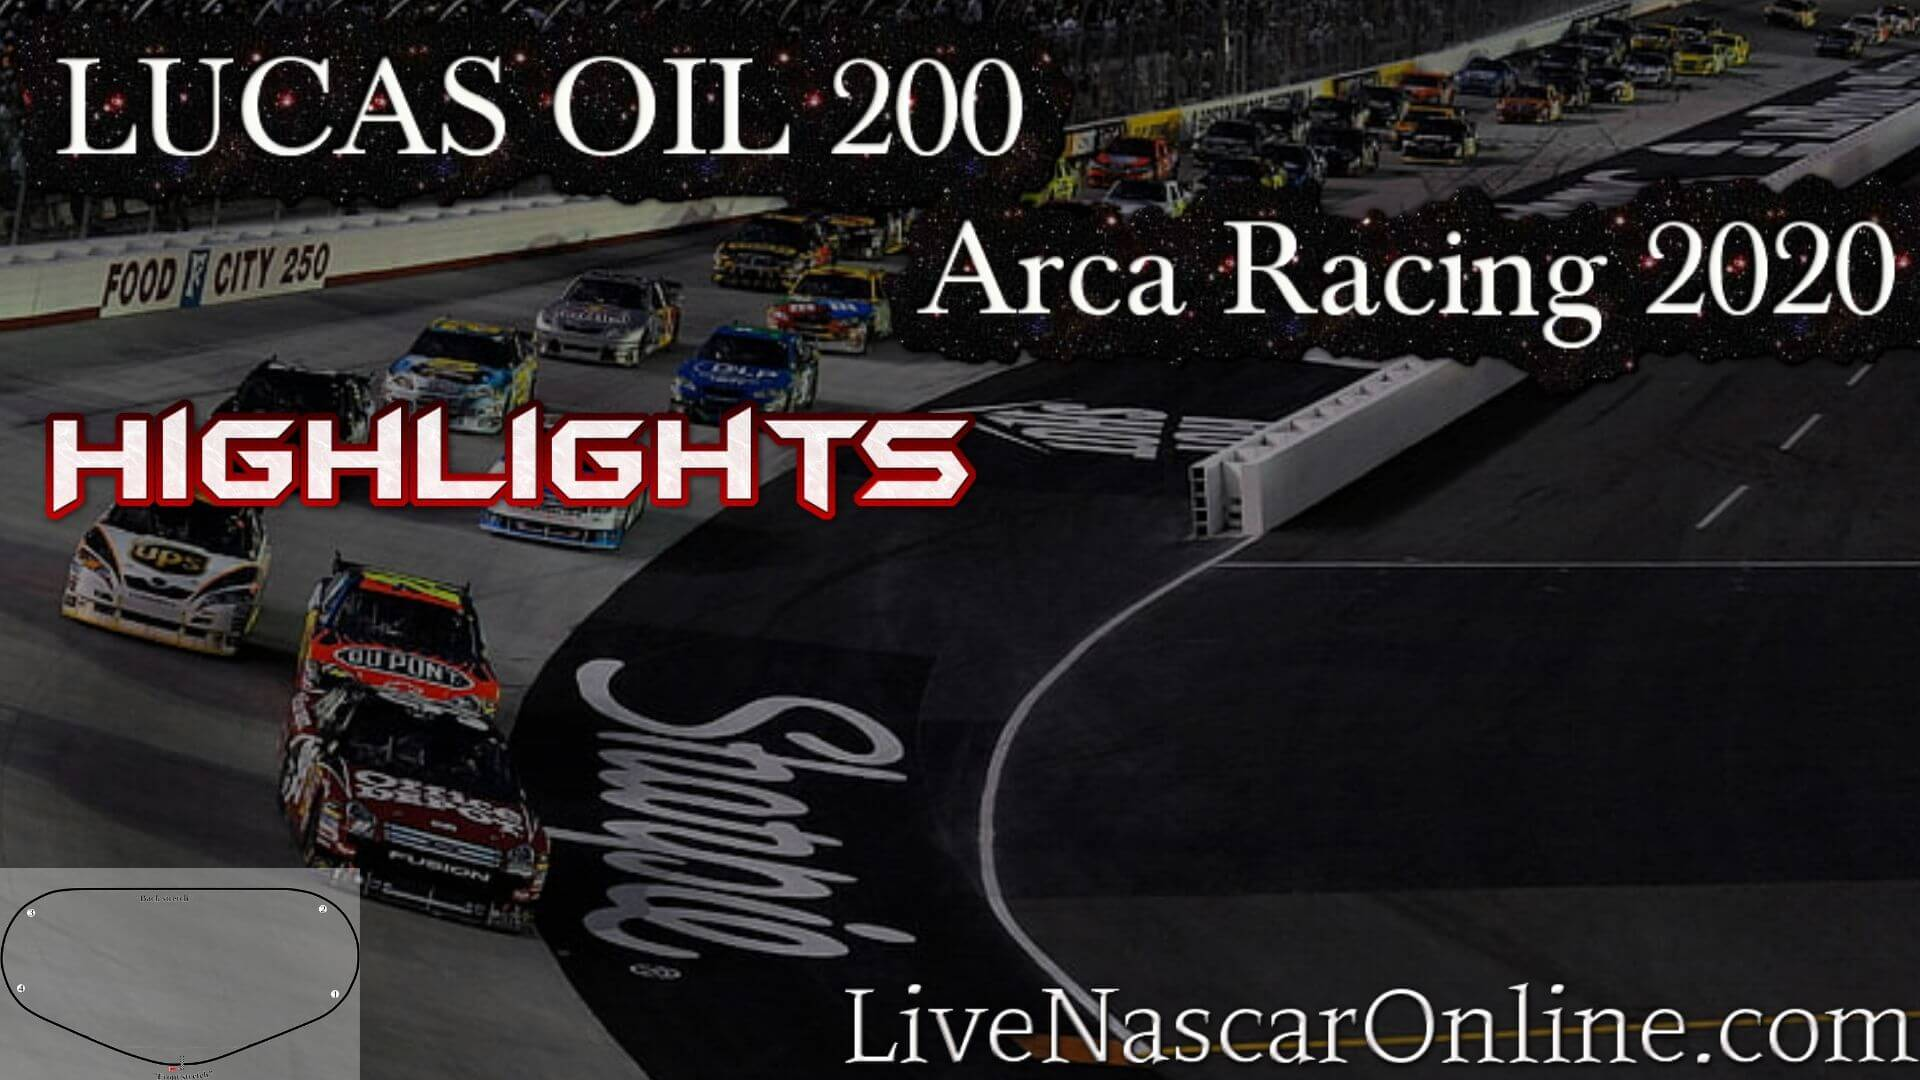 LUCAS OIL 200 Arca Racing Highlights 2020